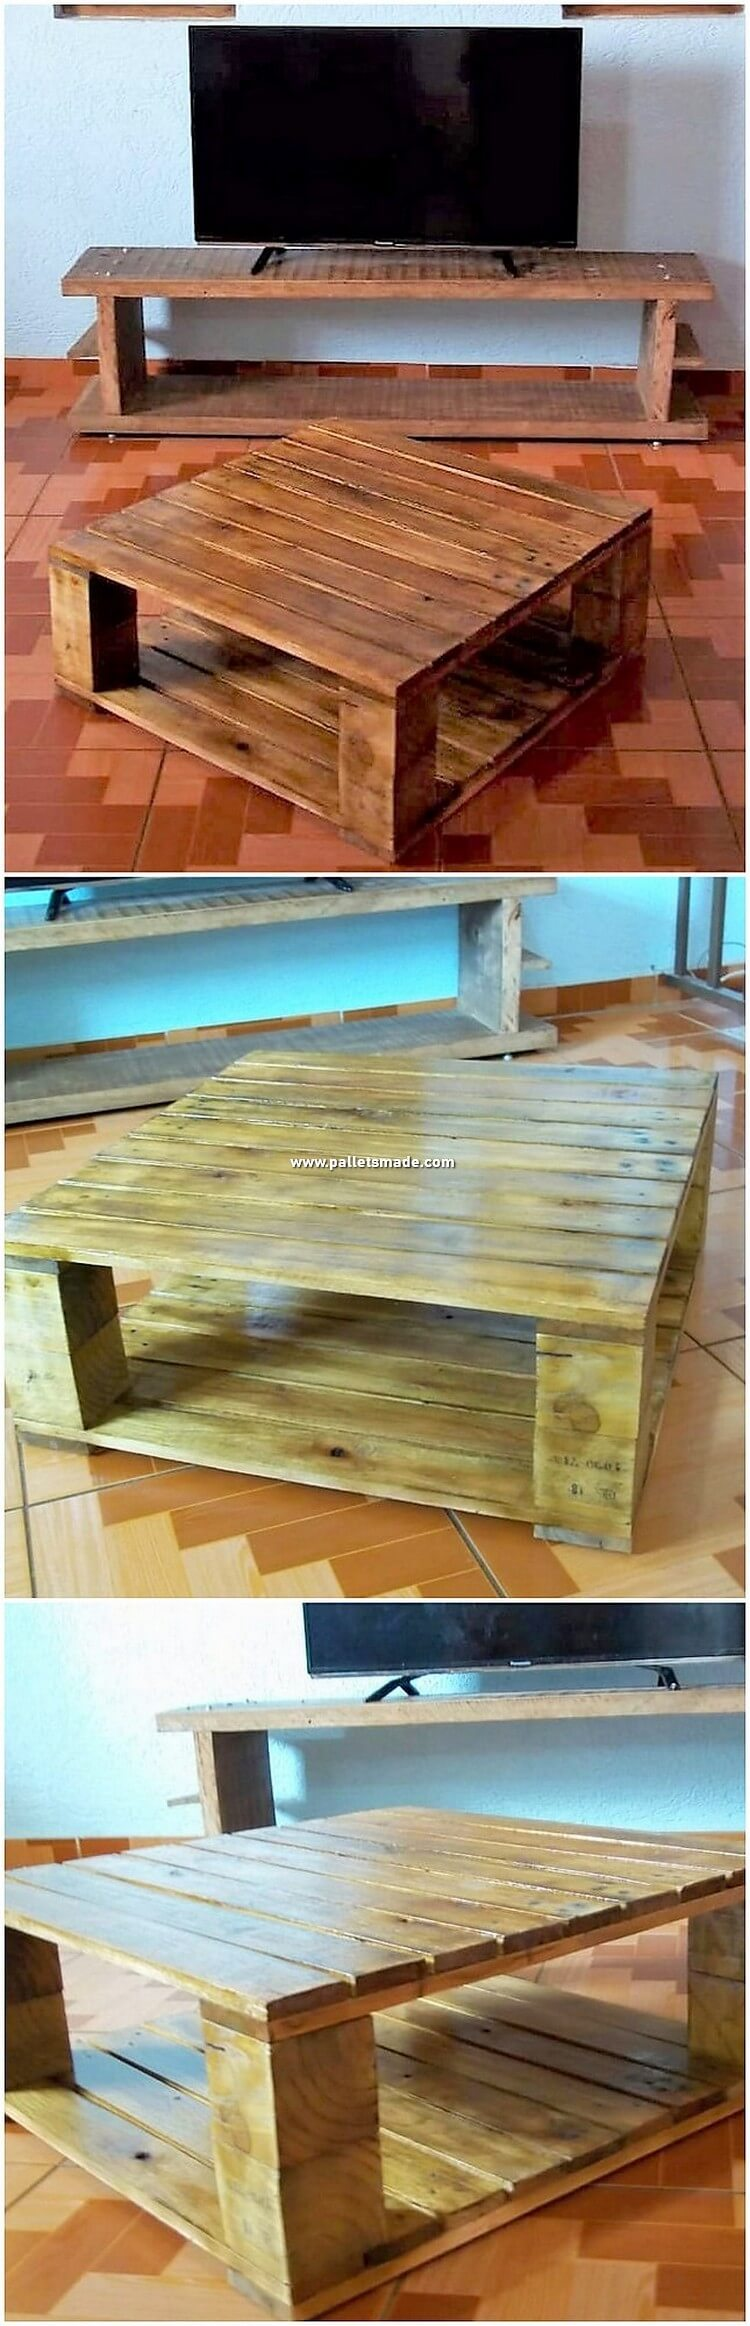 Pallet TV Stand and Coffee Table